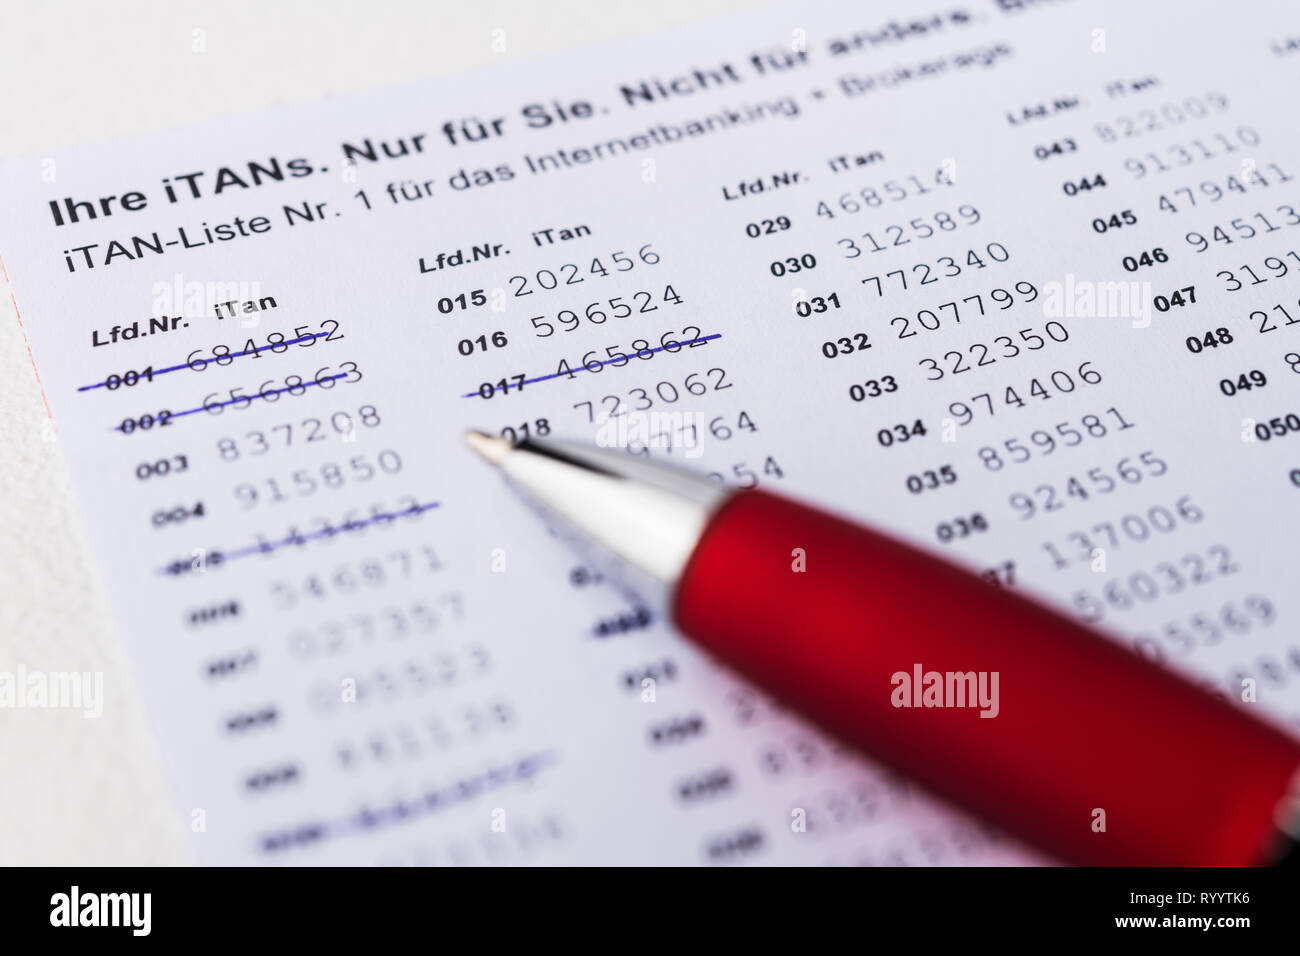 iTan-list with pen and computer keyboard - Stock Image